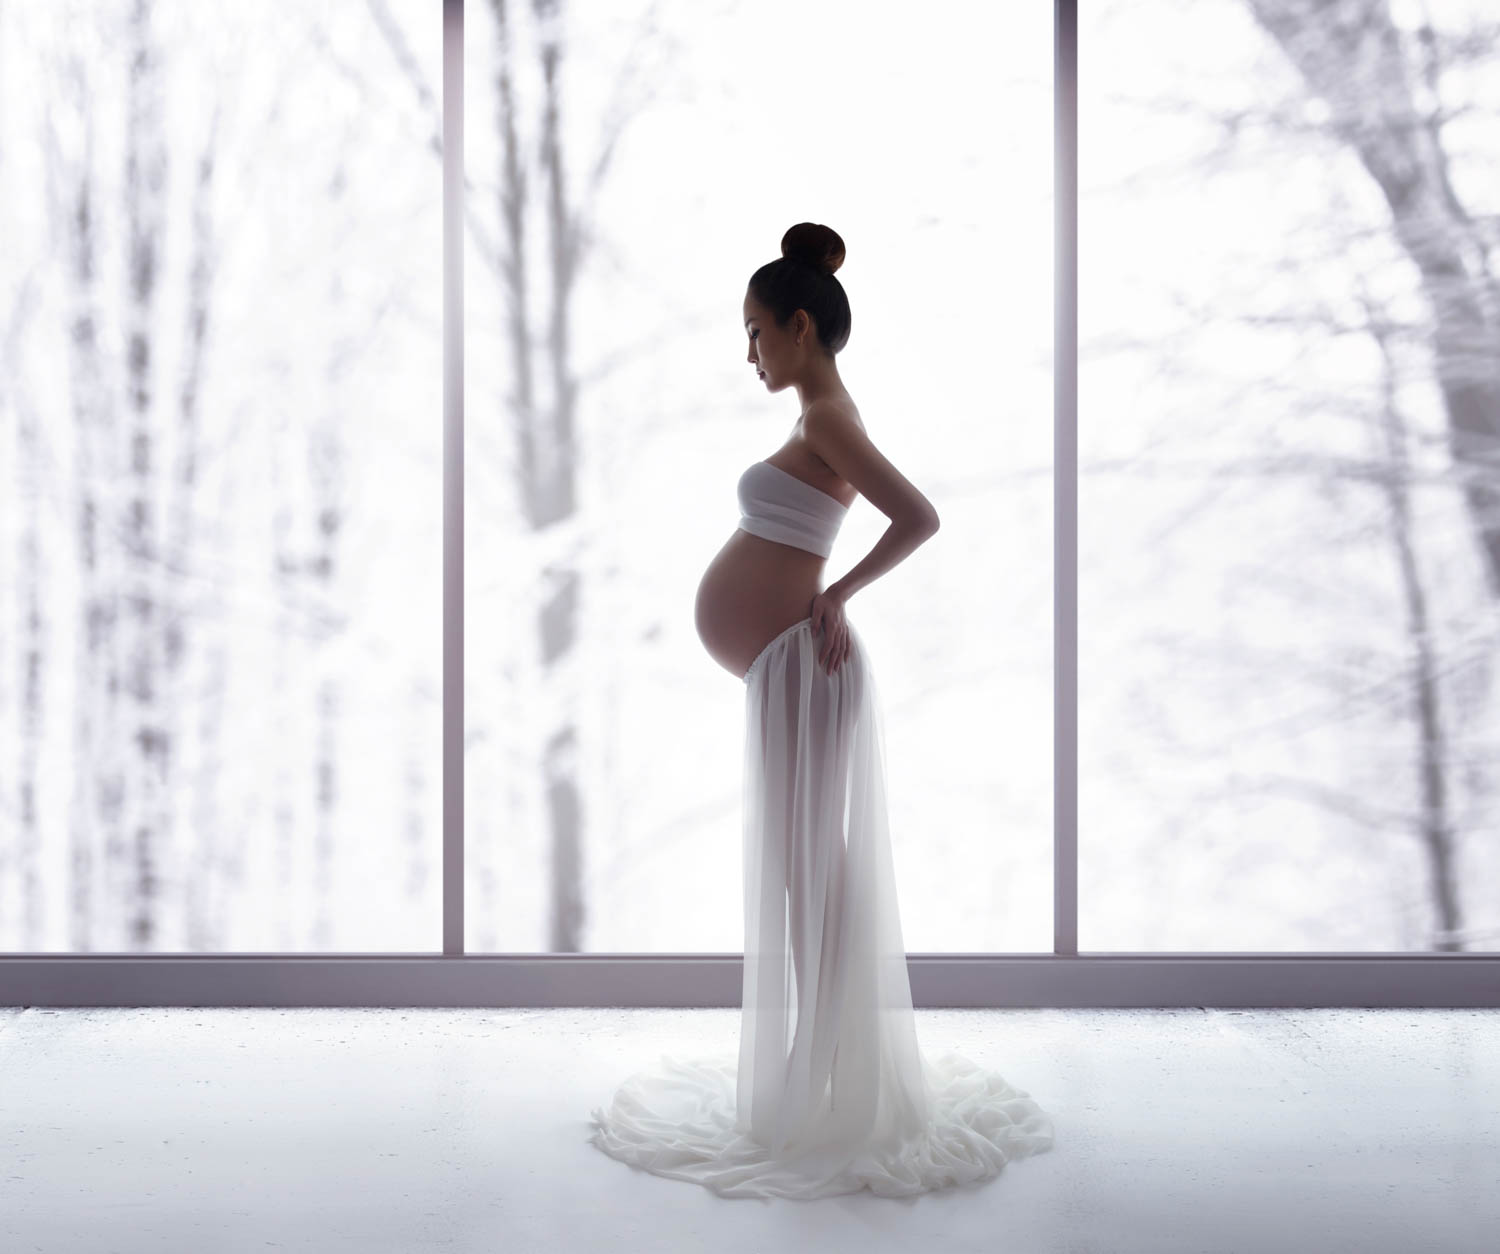 Best maternity photographer in NYC, fine-art pregnancy photography, artistic maternity and newborn photos, NYC